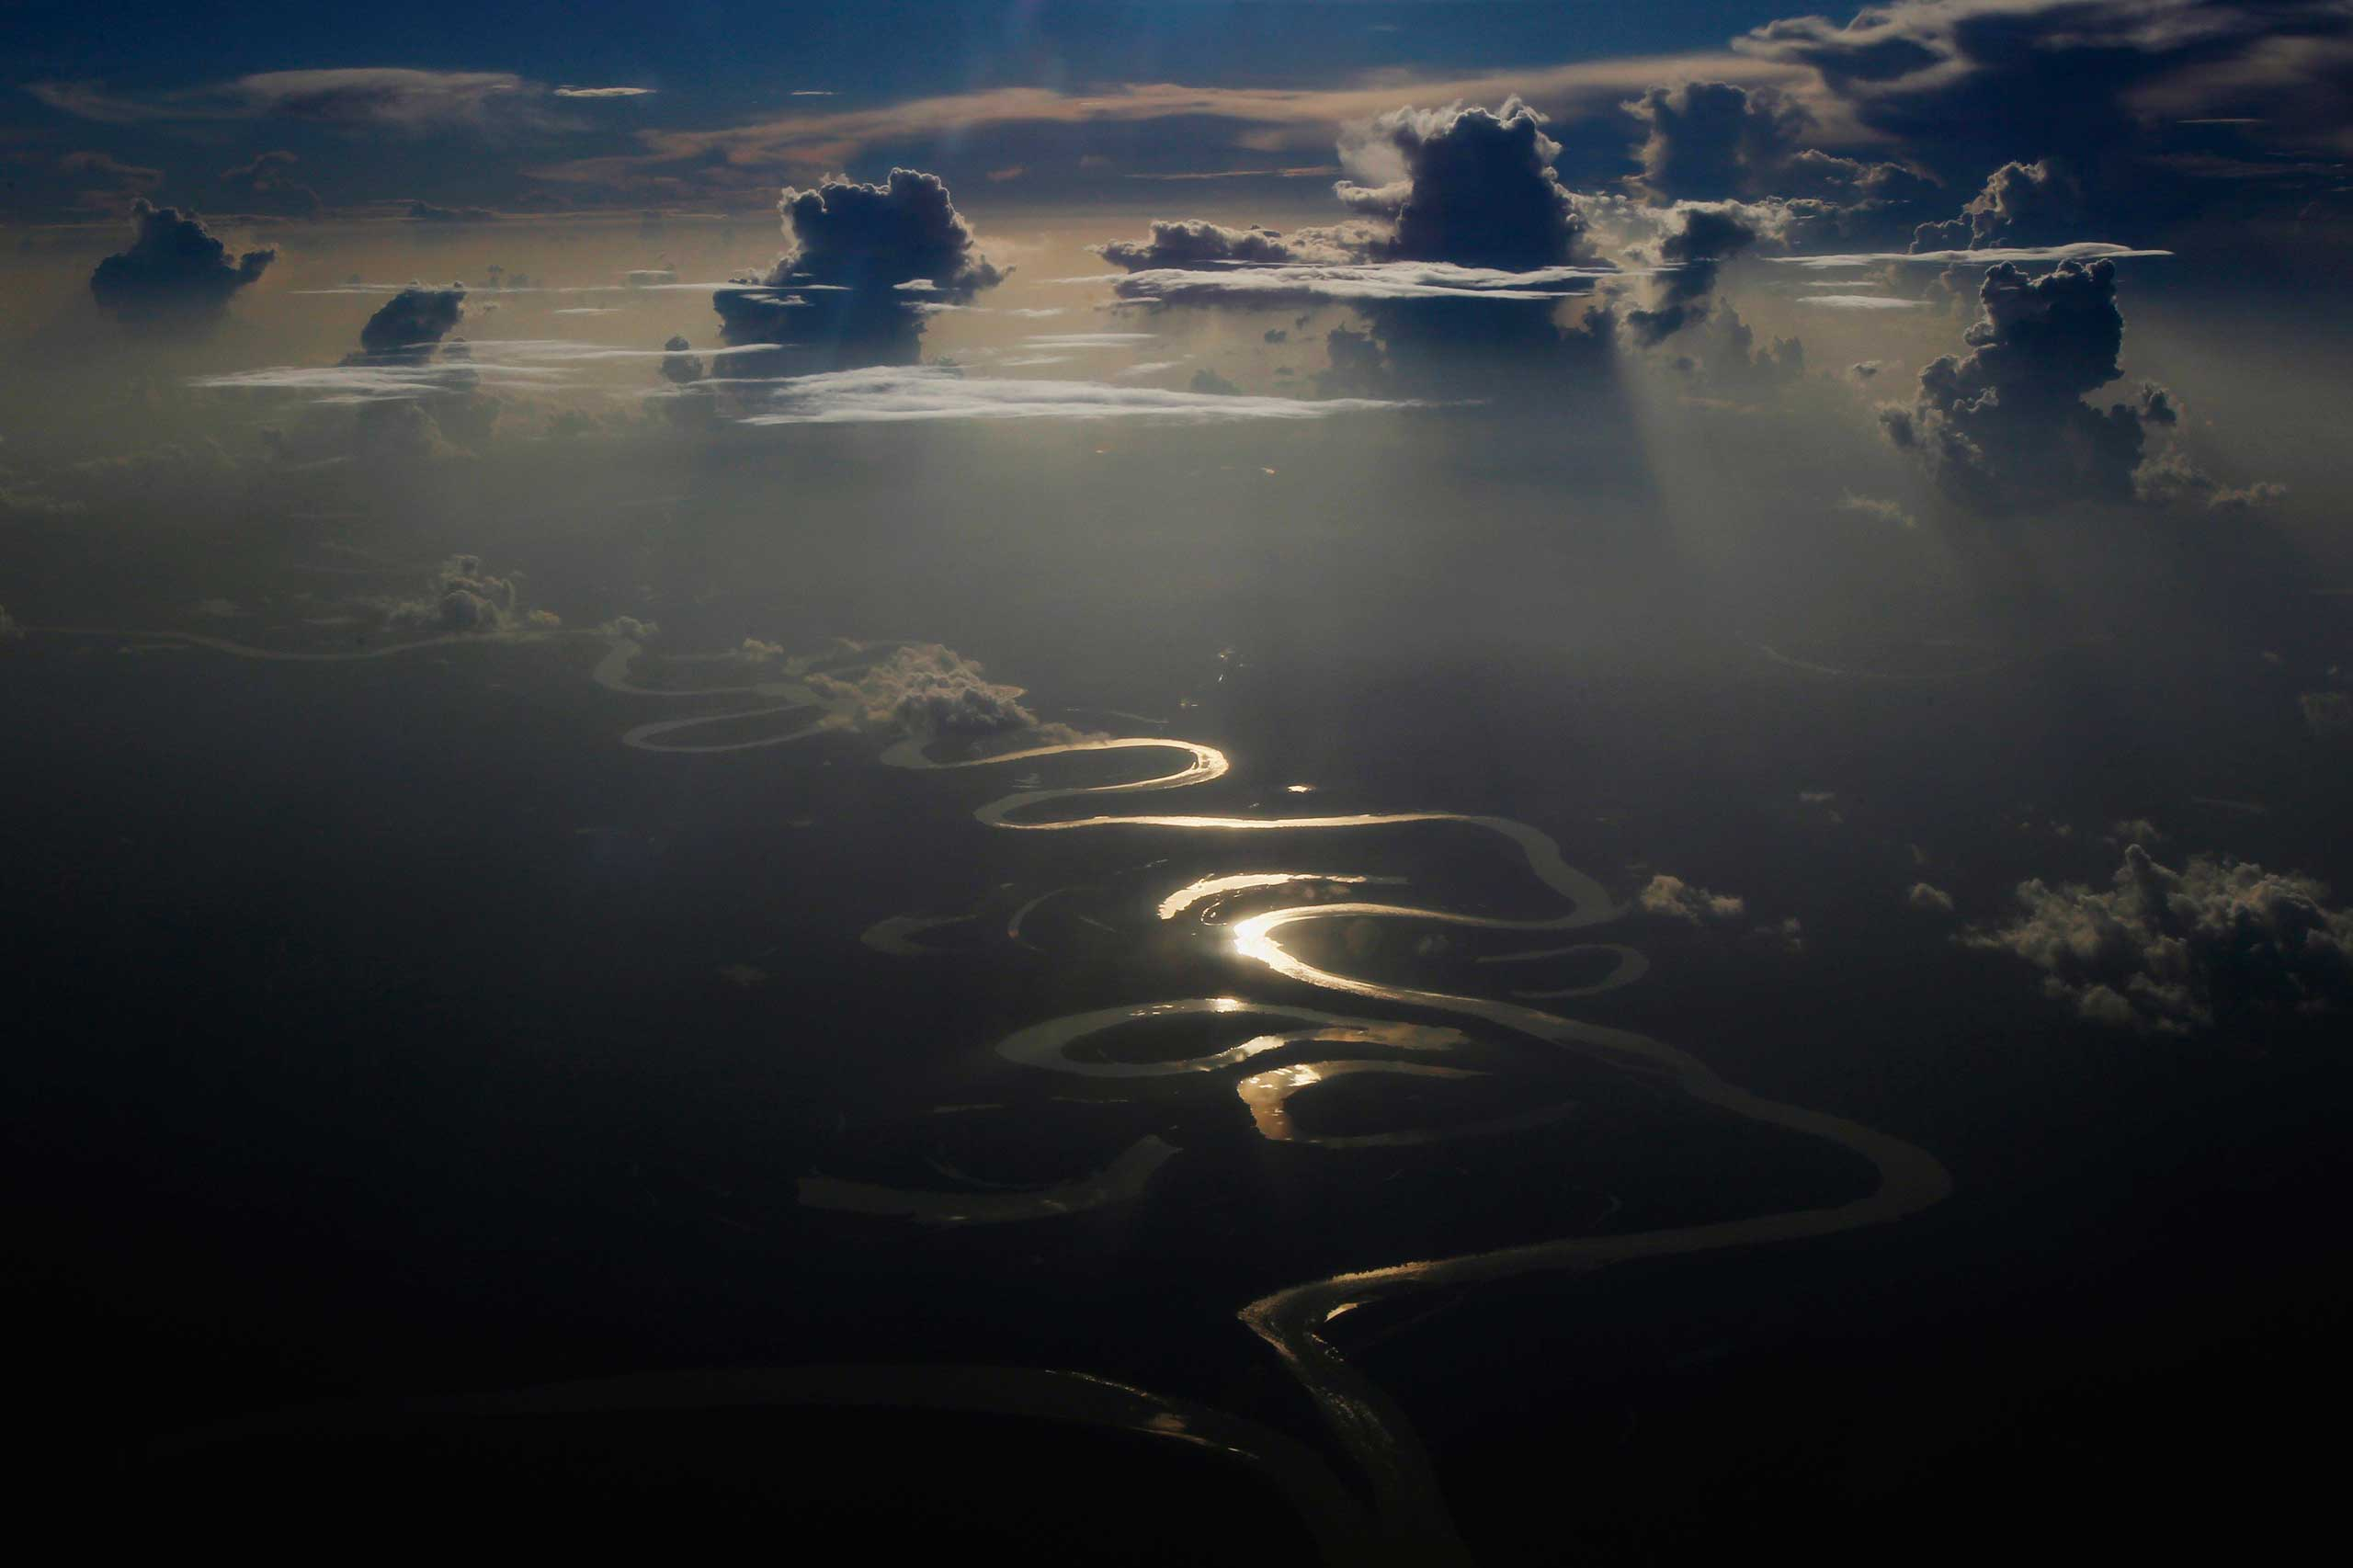 Sept. 29, 2014. An Aerial view of a river in Peru's Amazon region of Loreto.